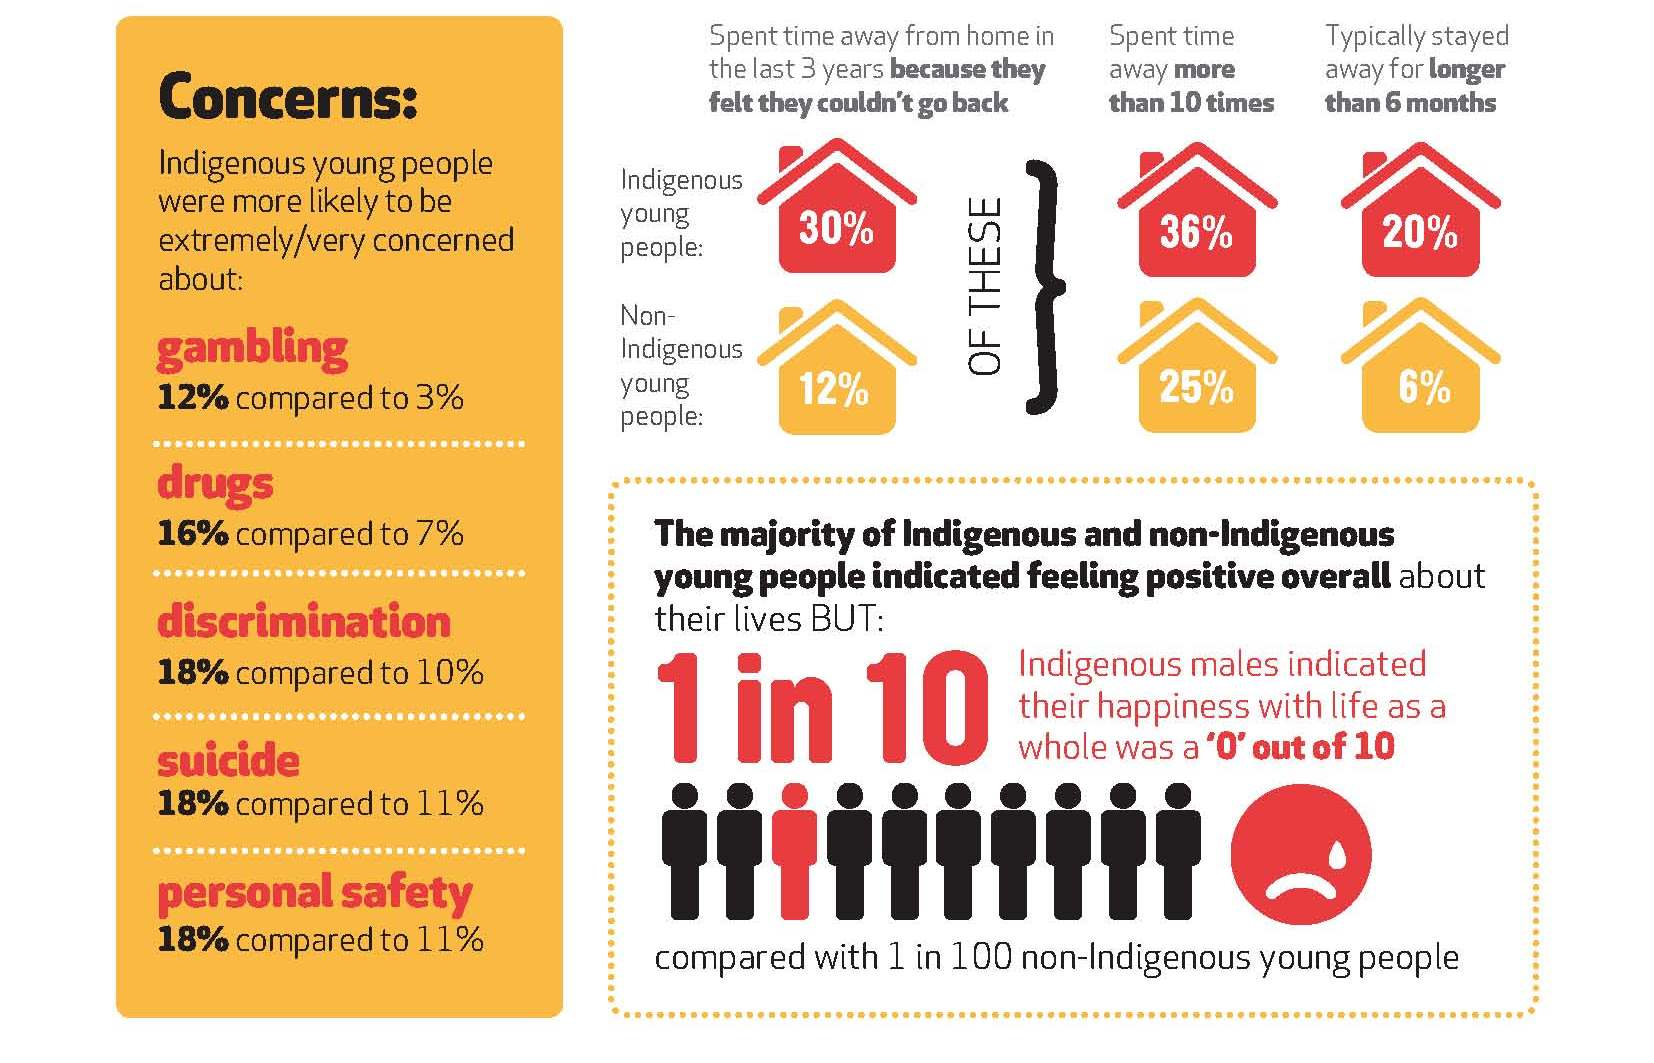 Australian Aboriginal And Torres Strait Islander Health Survey